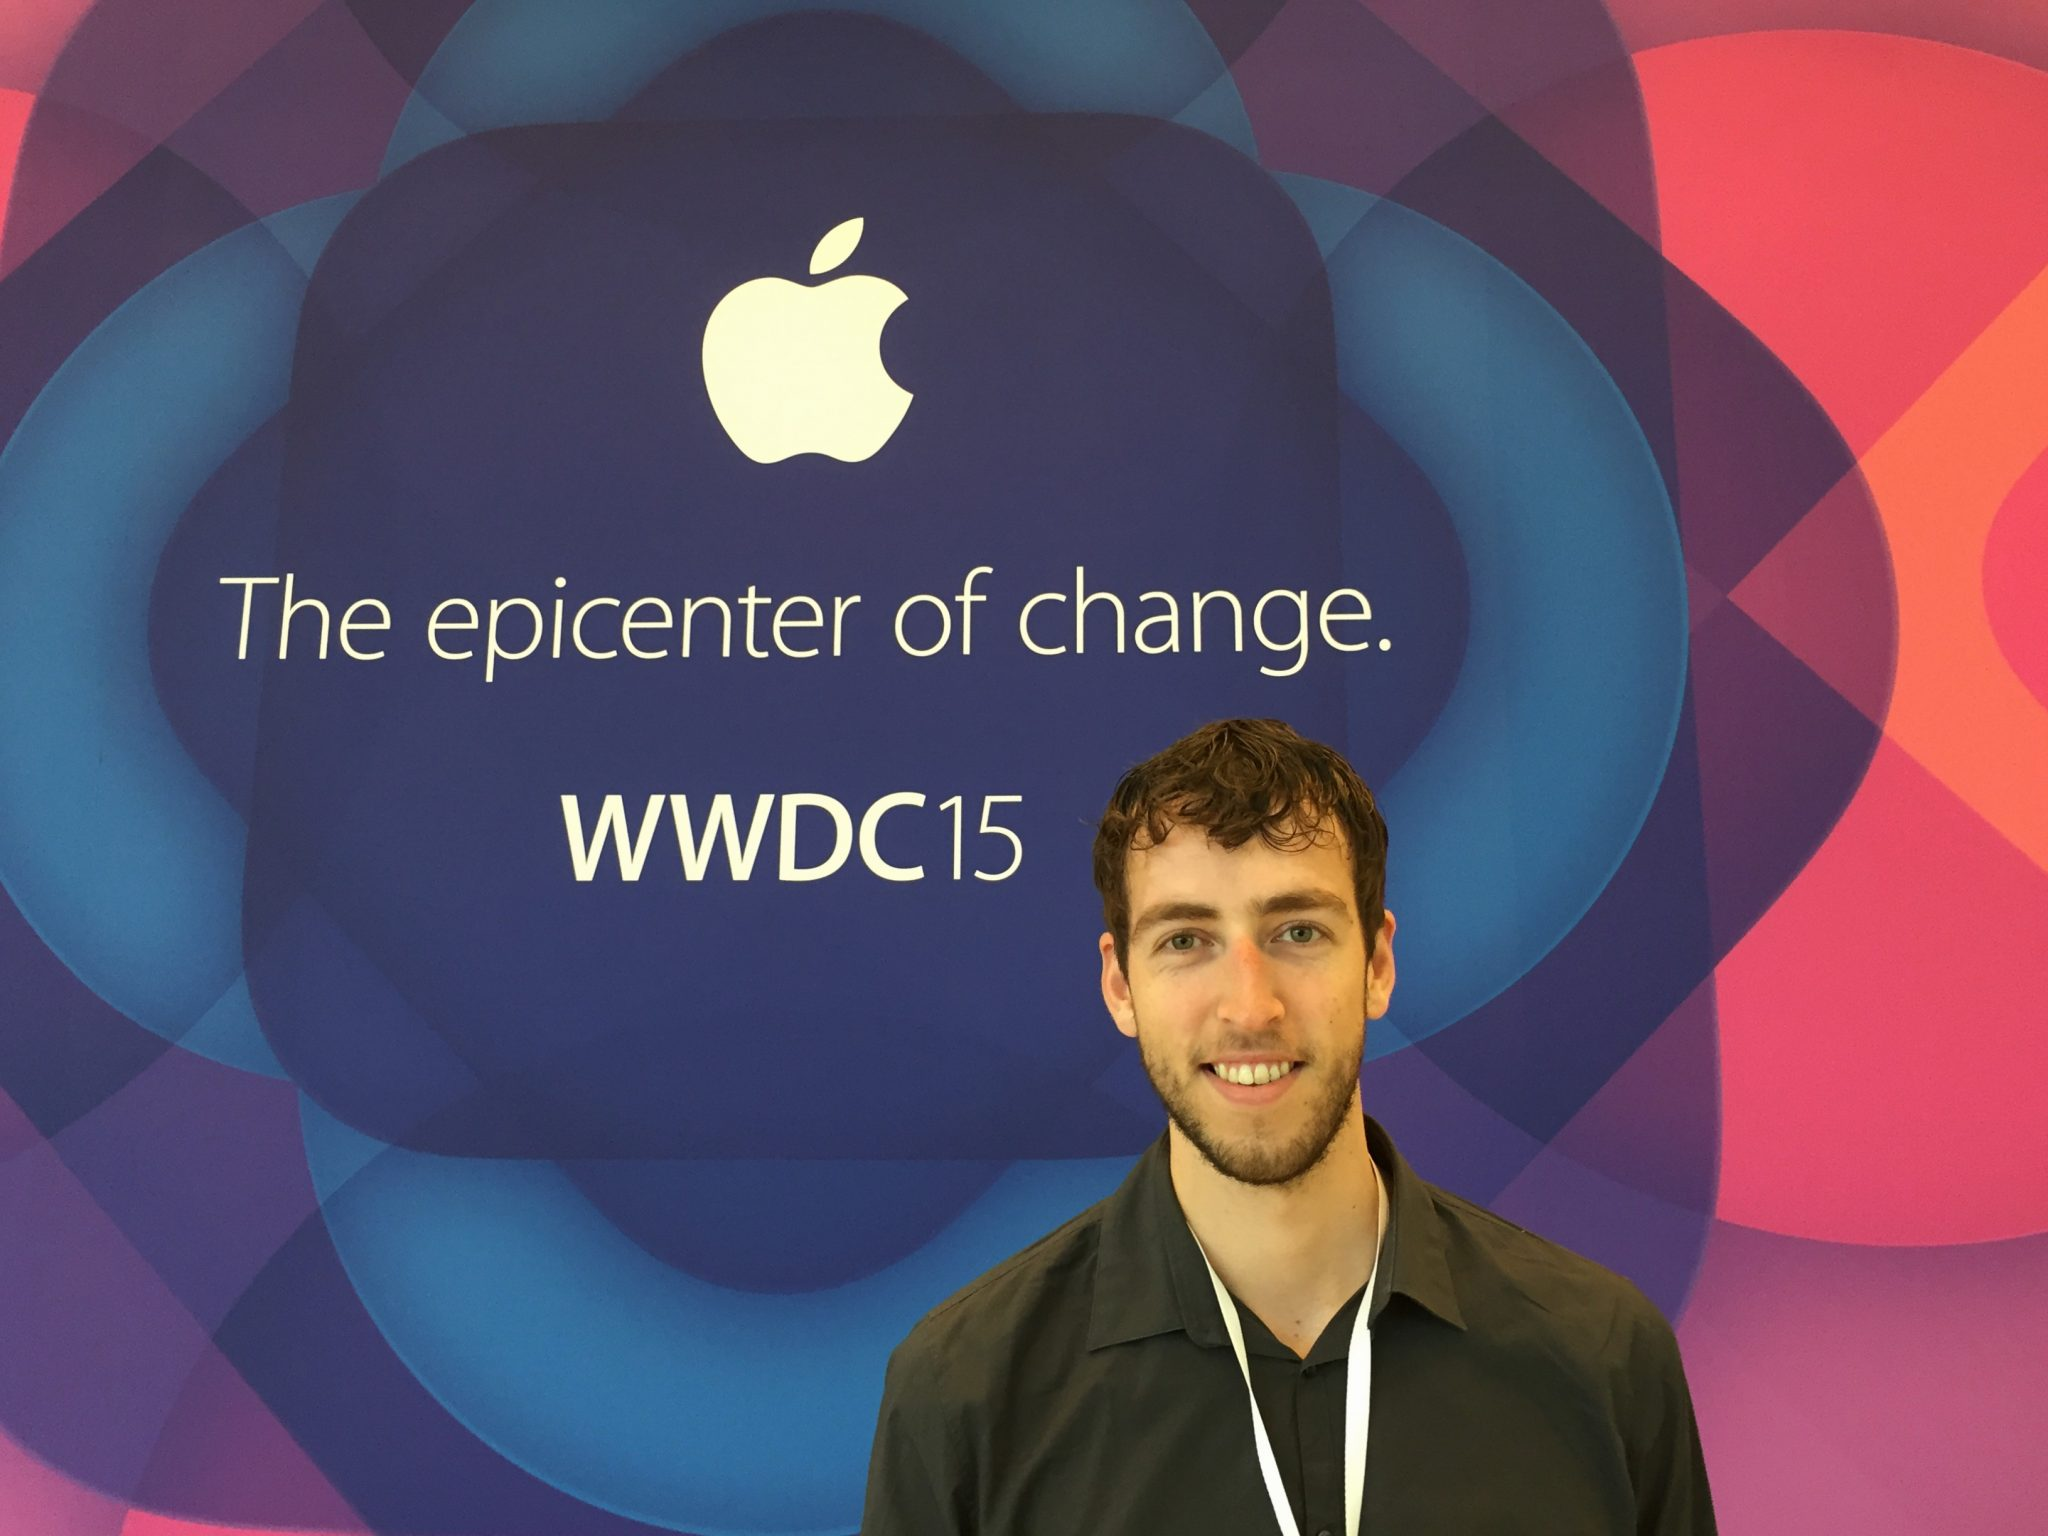 Me performing one of the WWDC first timer tips: take a selfie!